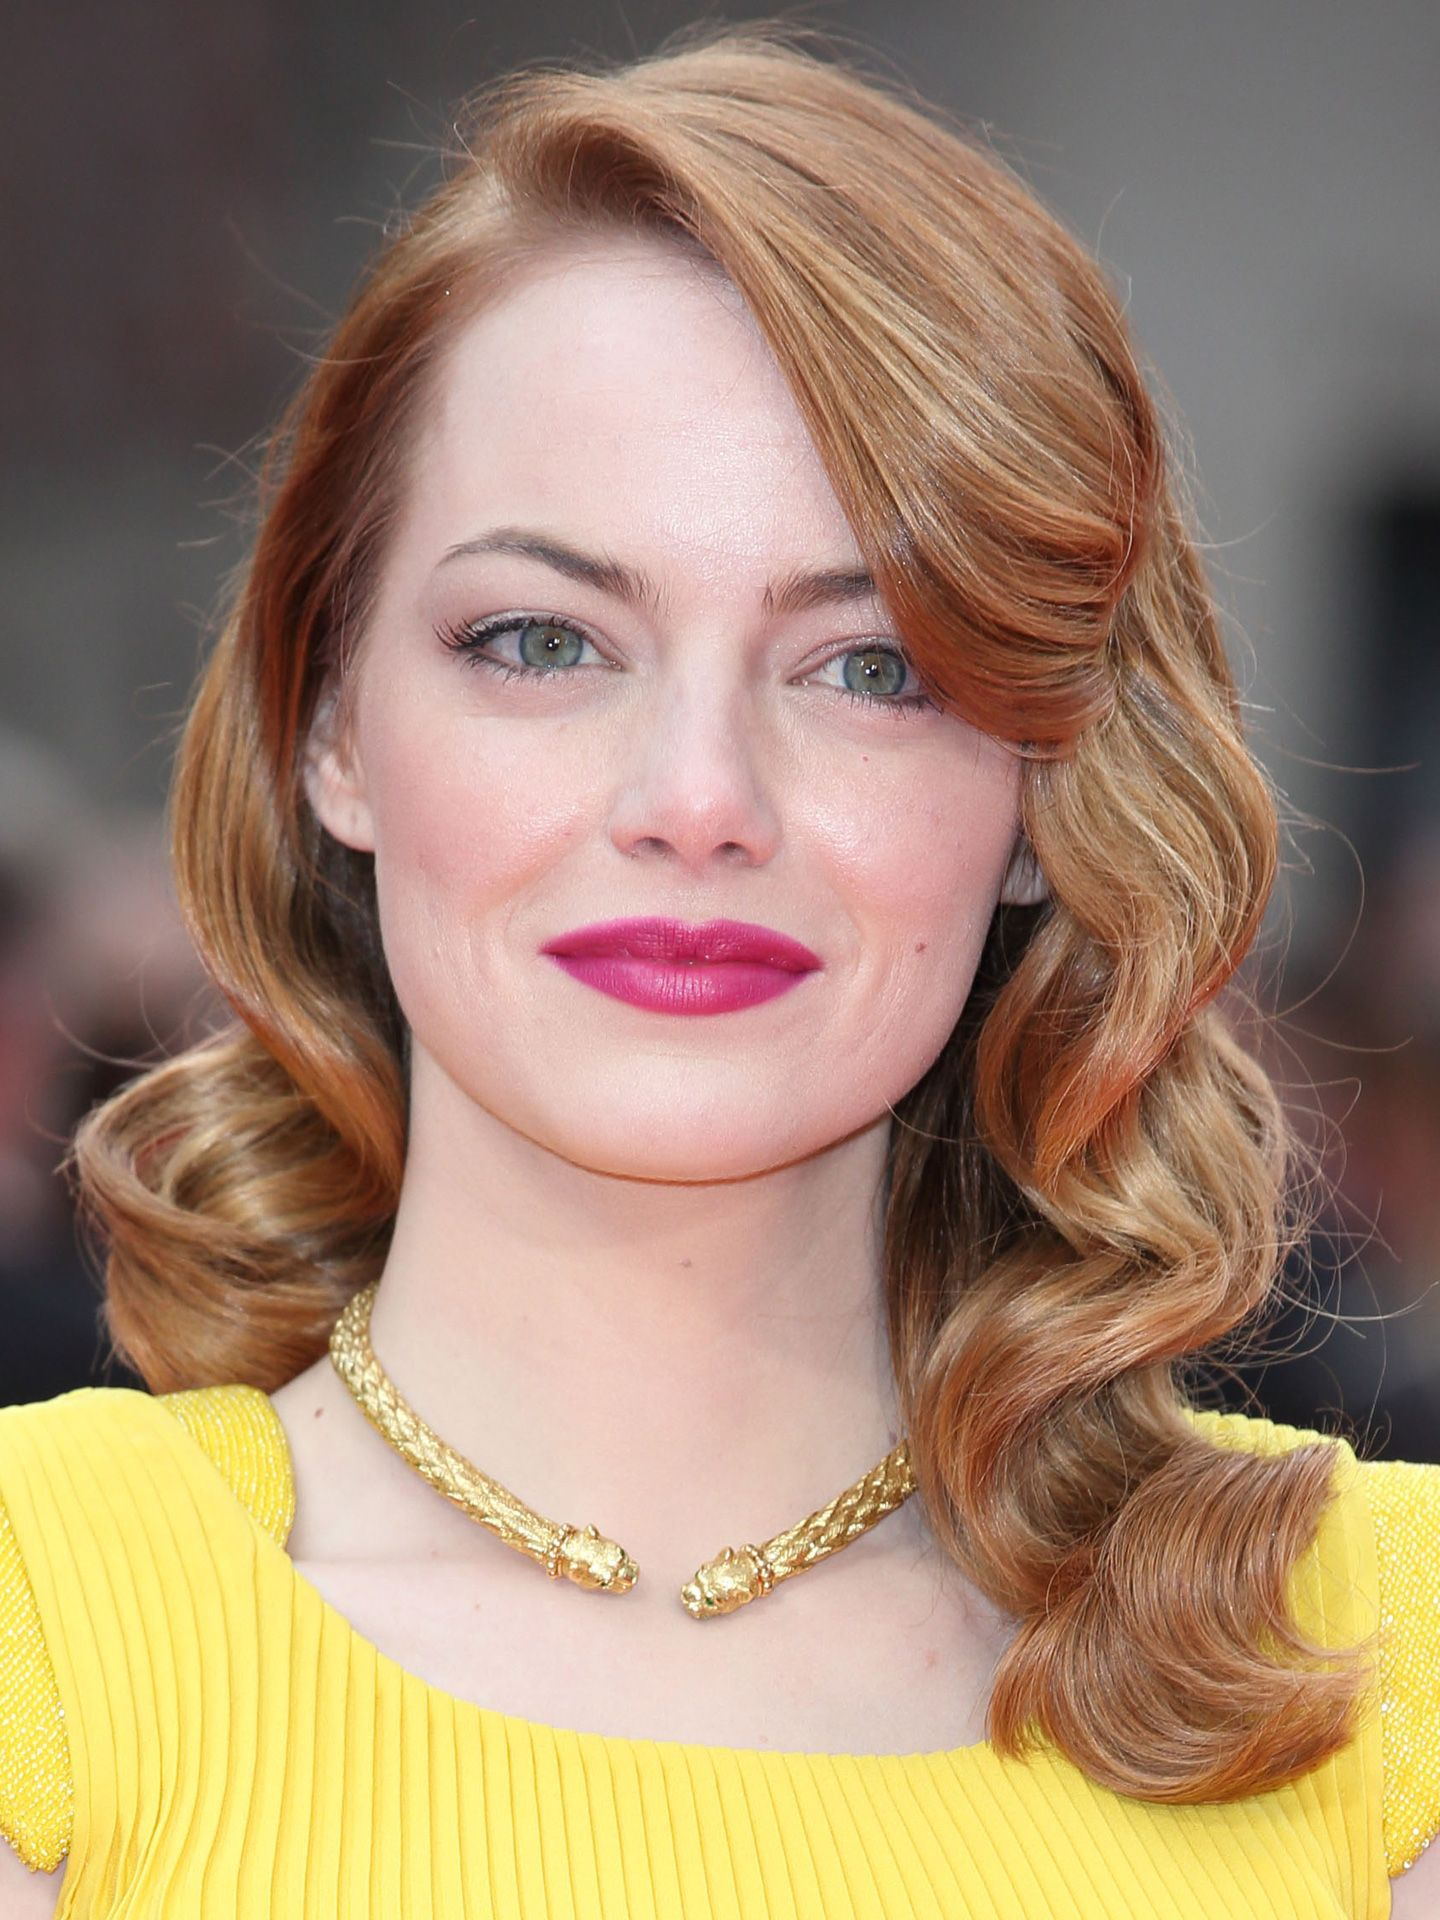 Emma stone hair and makeup pictures of emma stones hairstyles emma stone hair and makeup pictures of emma stones hairstyles and beauty looks urmus Choice Image